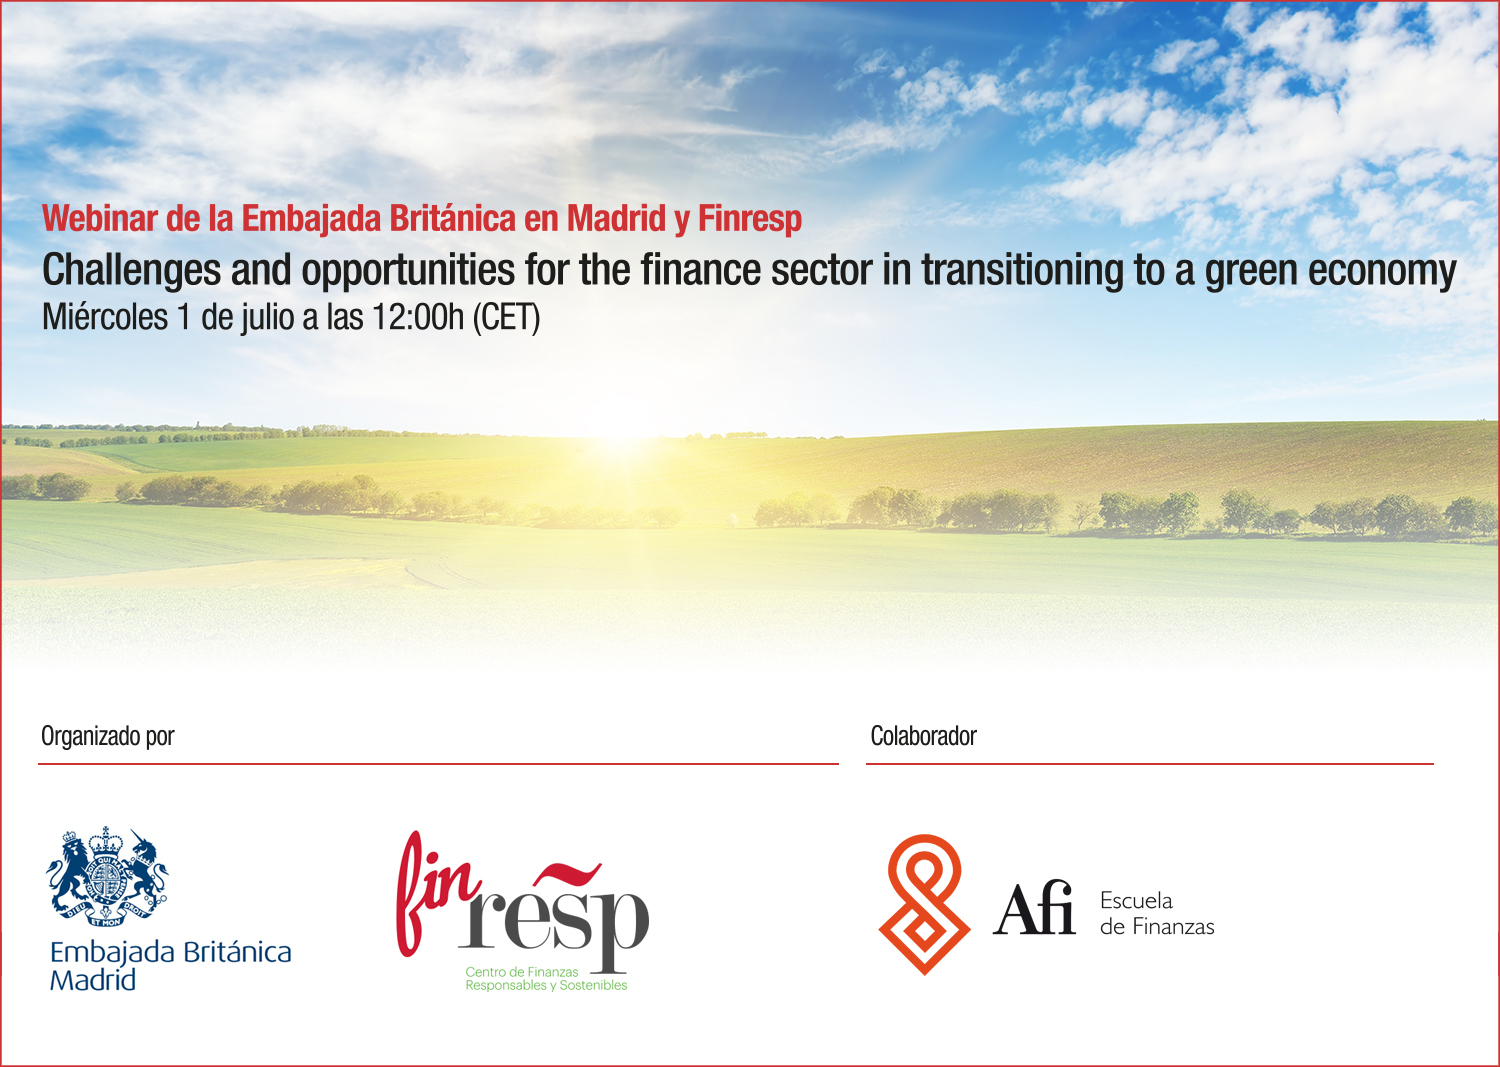 Challenges and opportunities for the finance sector in transitioning to a green economy